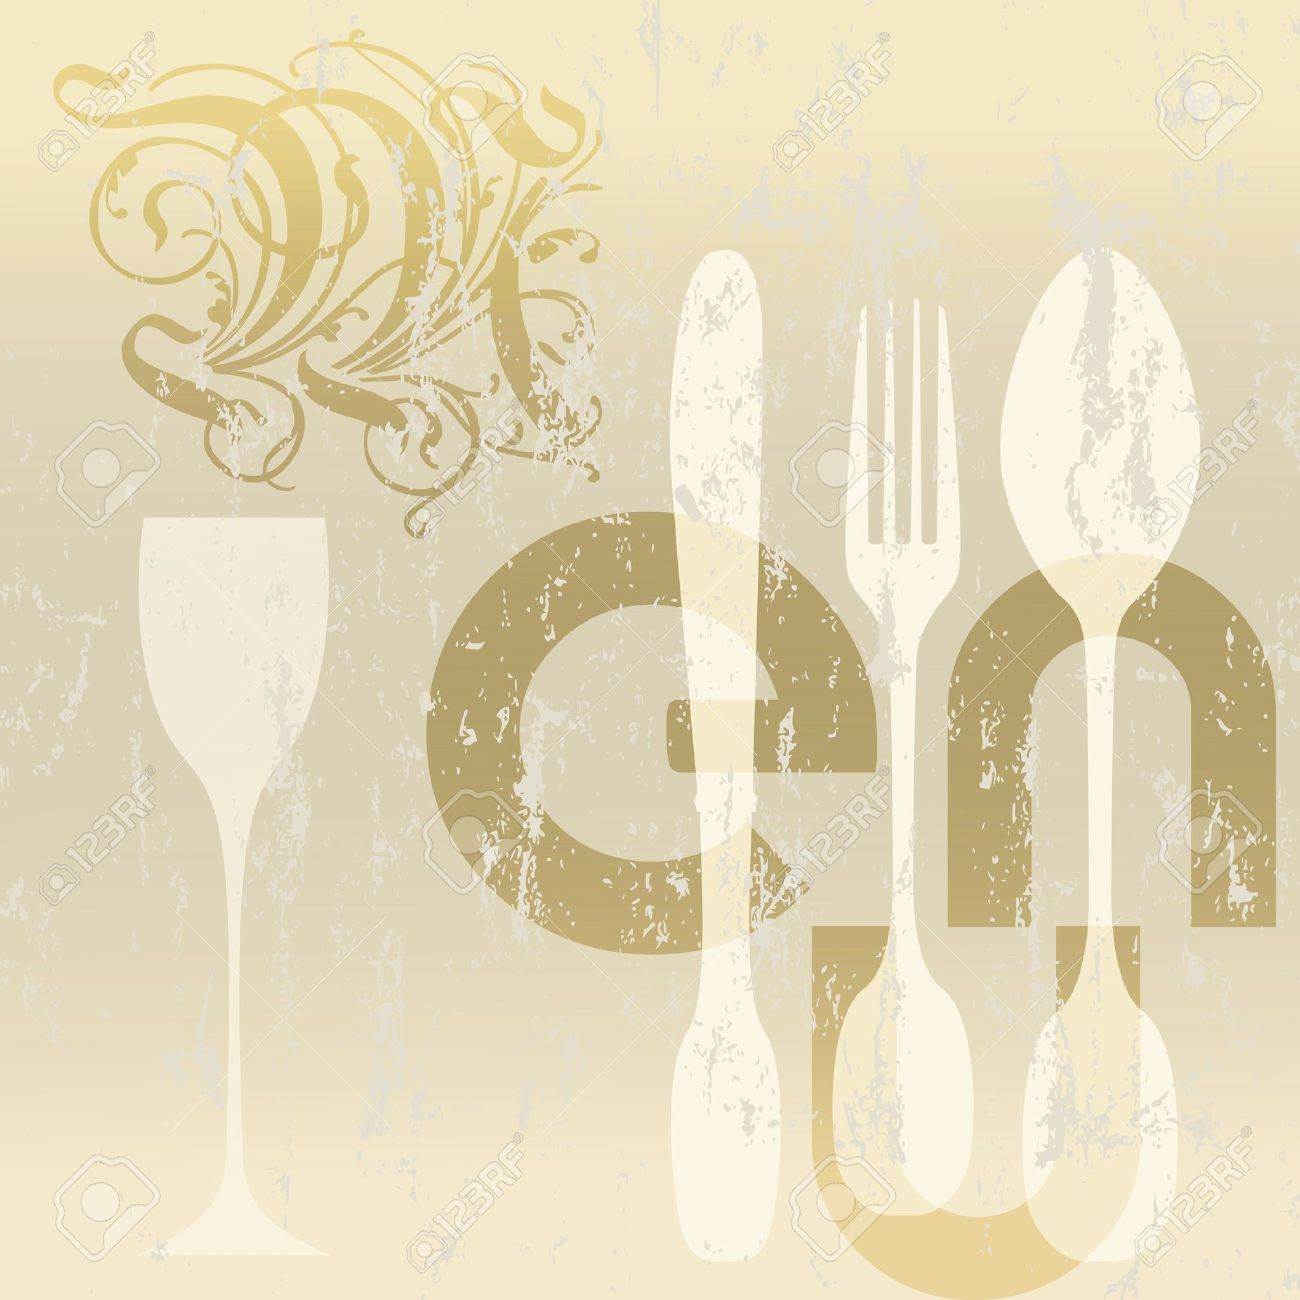 menu card design for restaurant royalty free cliparts, vectors, and